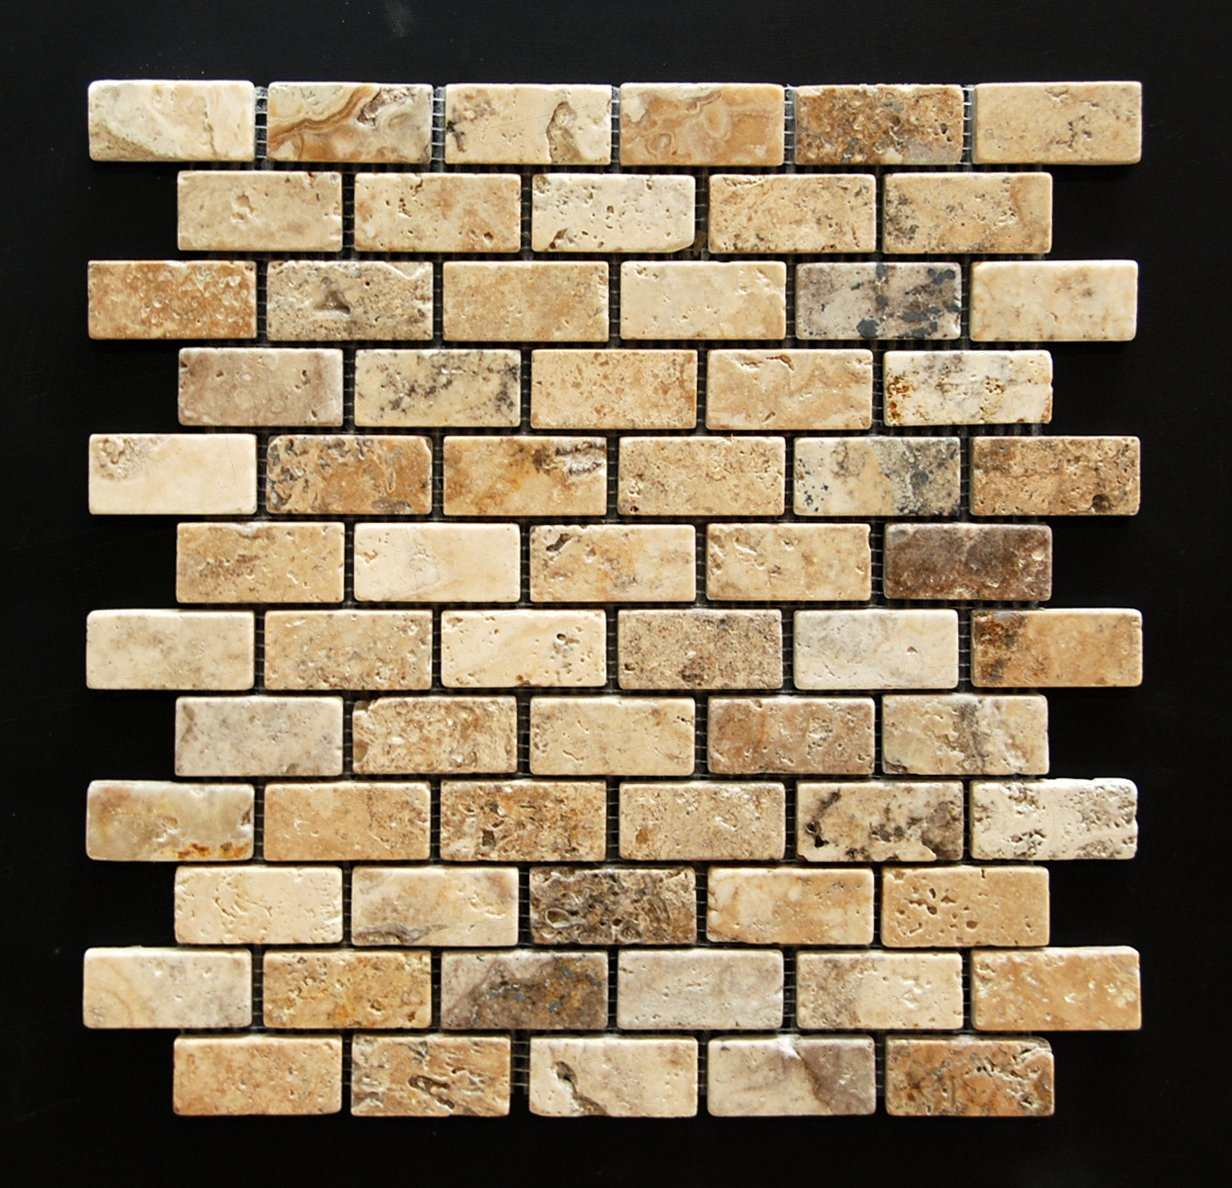 Philadelphia 1 X 2 Tumbled Travertine Brick Mosaic Tile - Box of 5 sq. ft.